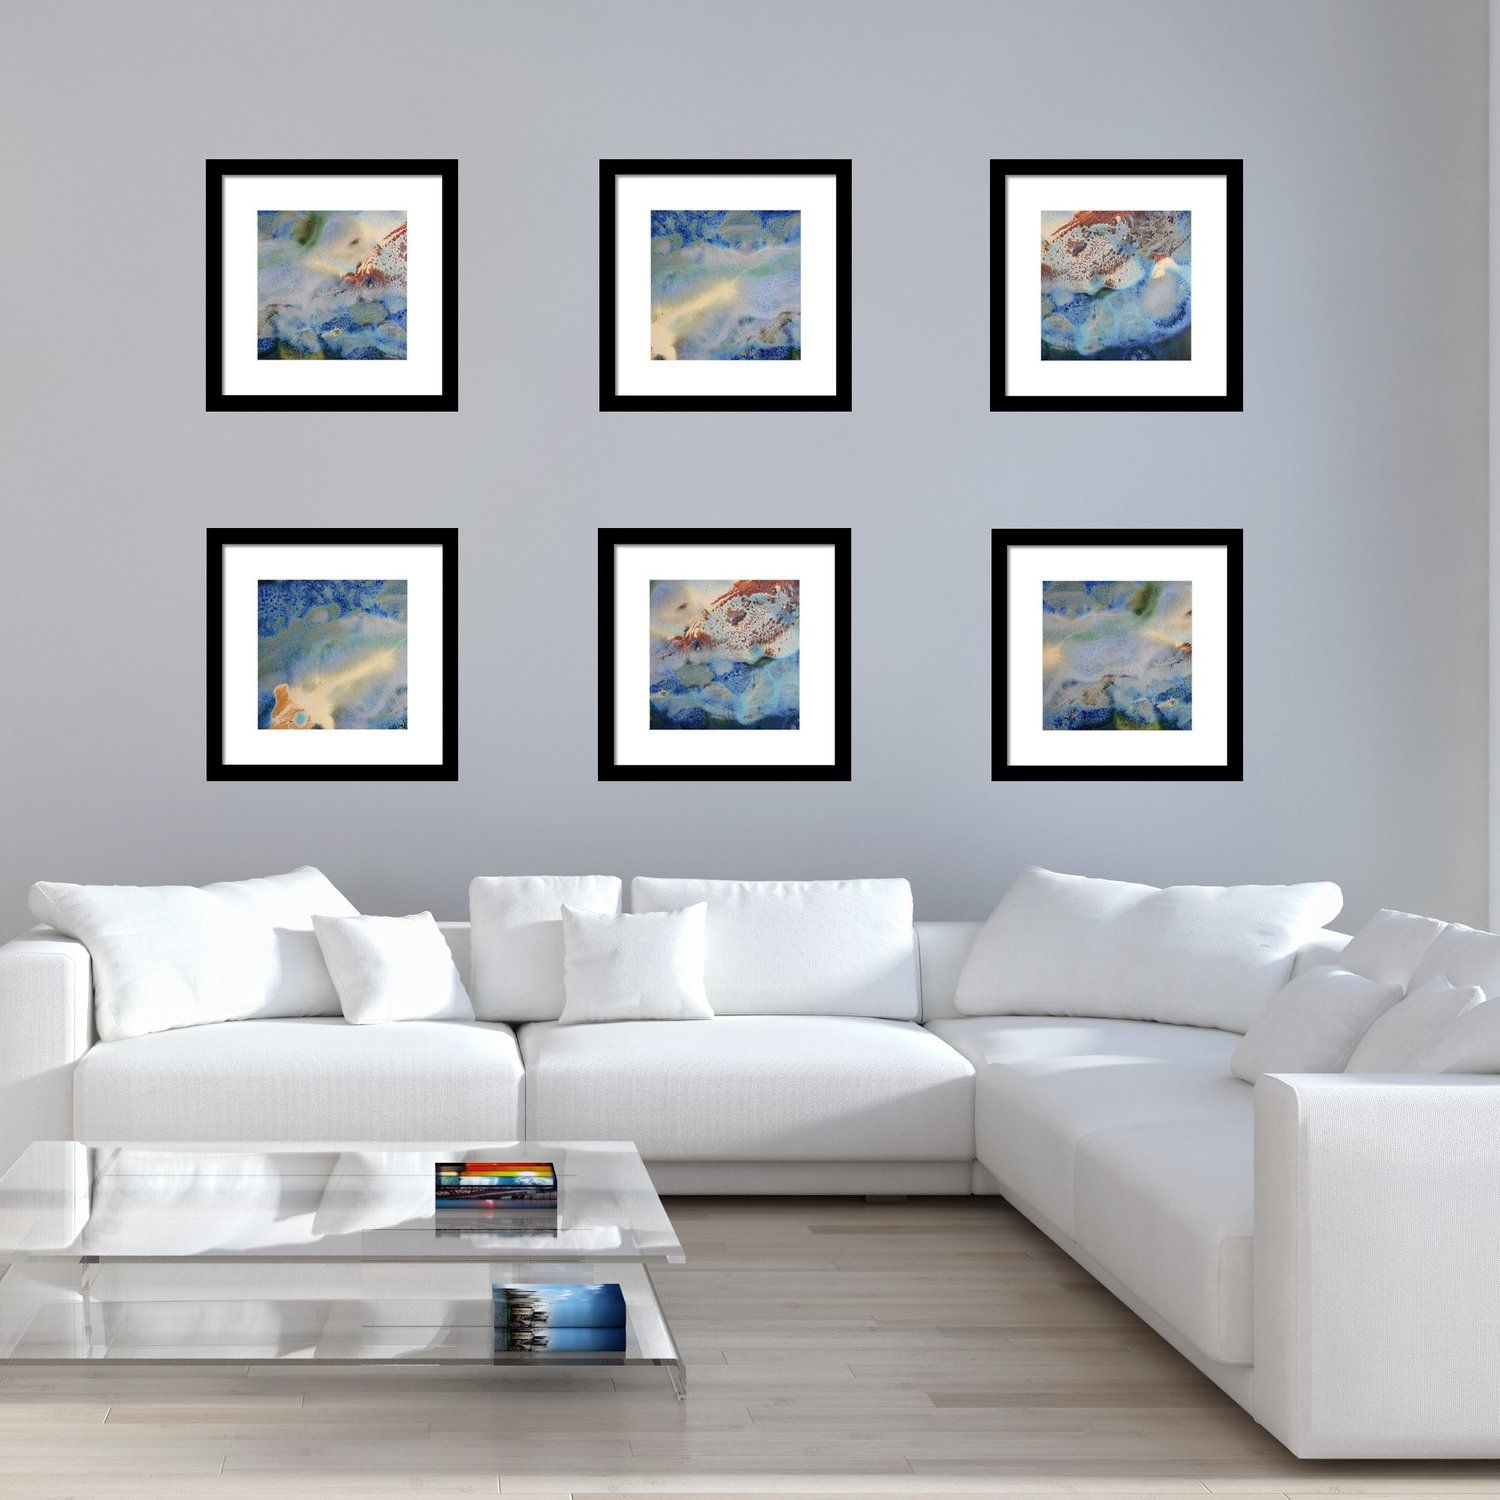 Square Abstract Landscape Prints In Hallway - Blue Yellow Brown